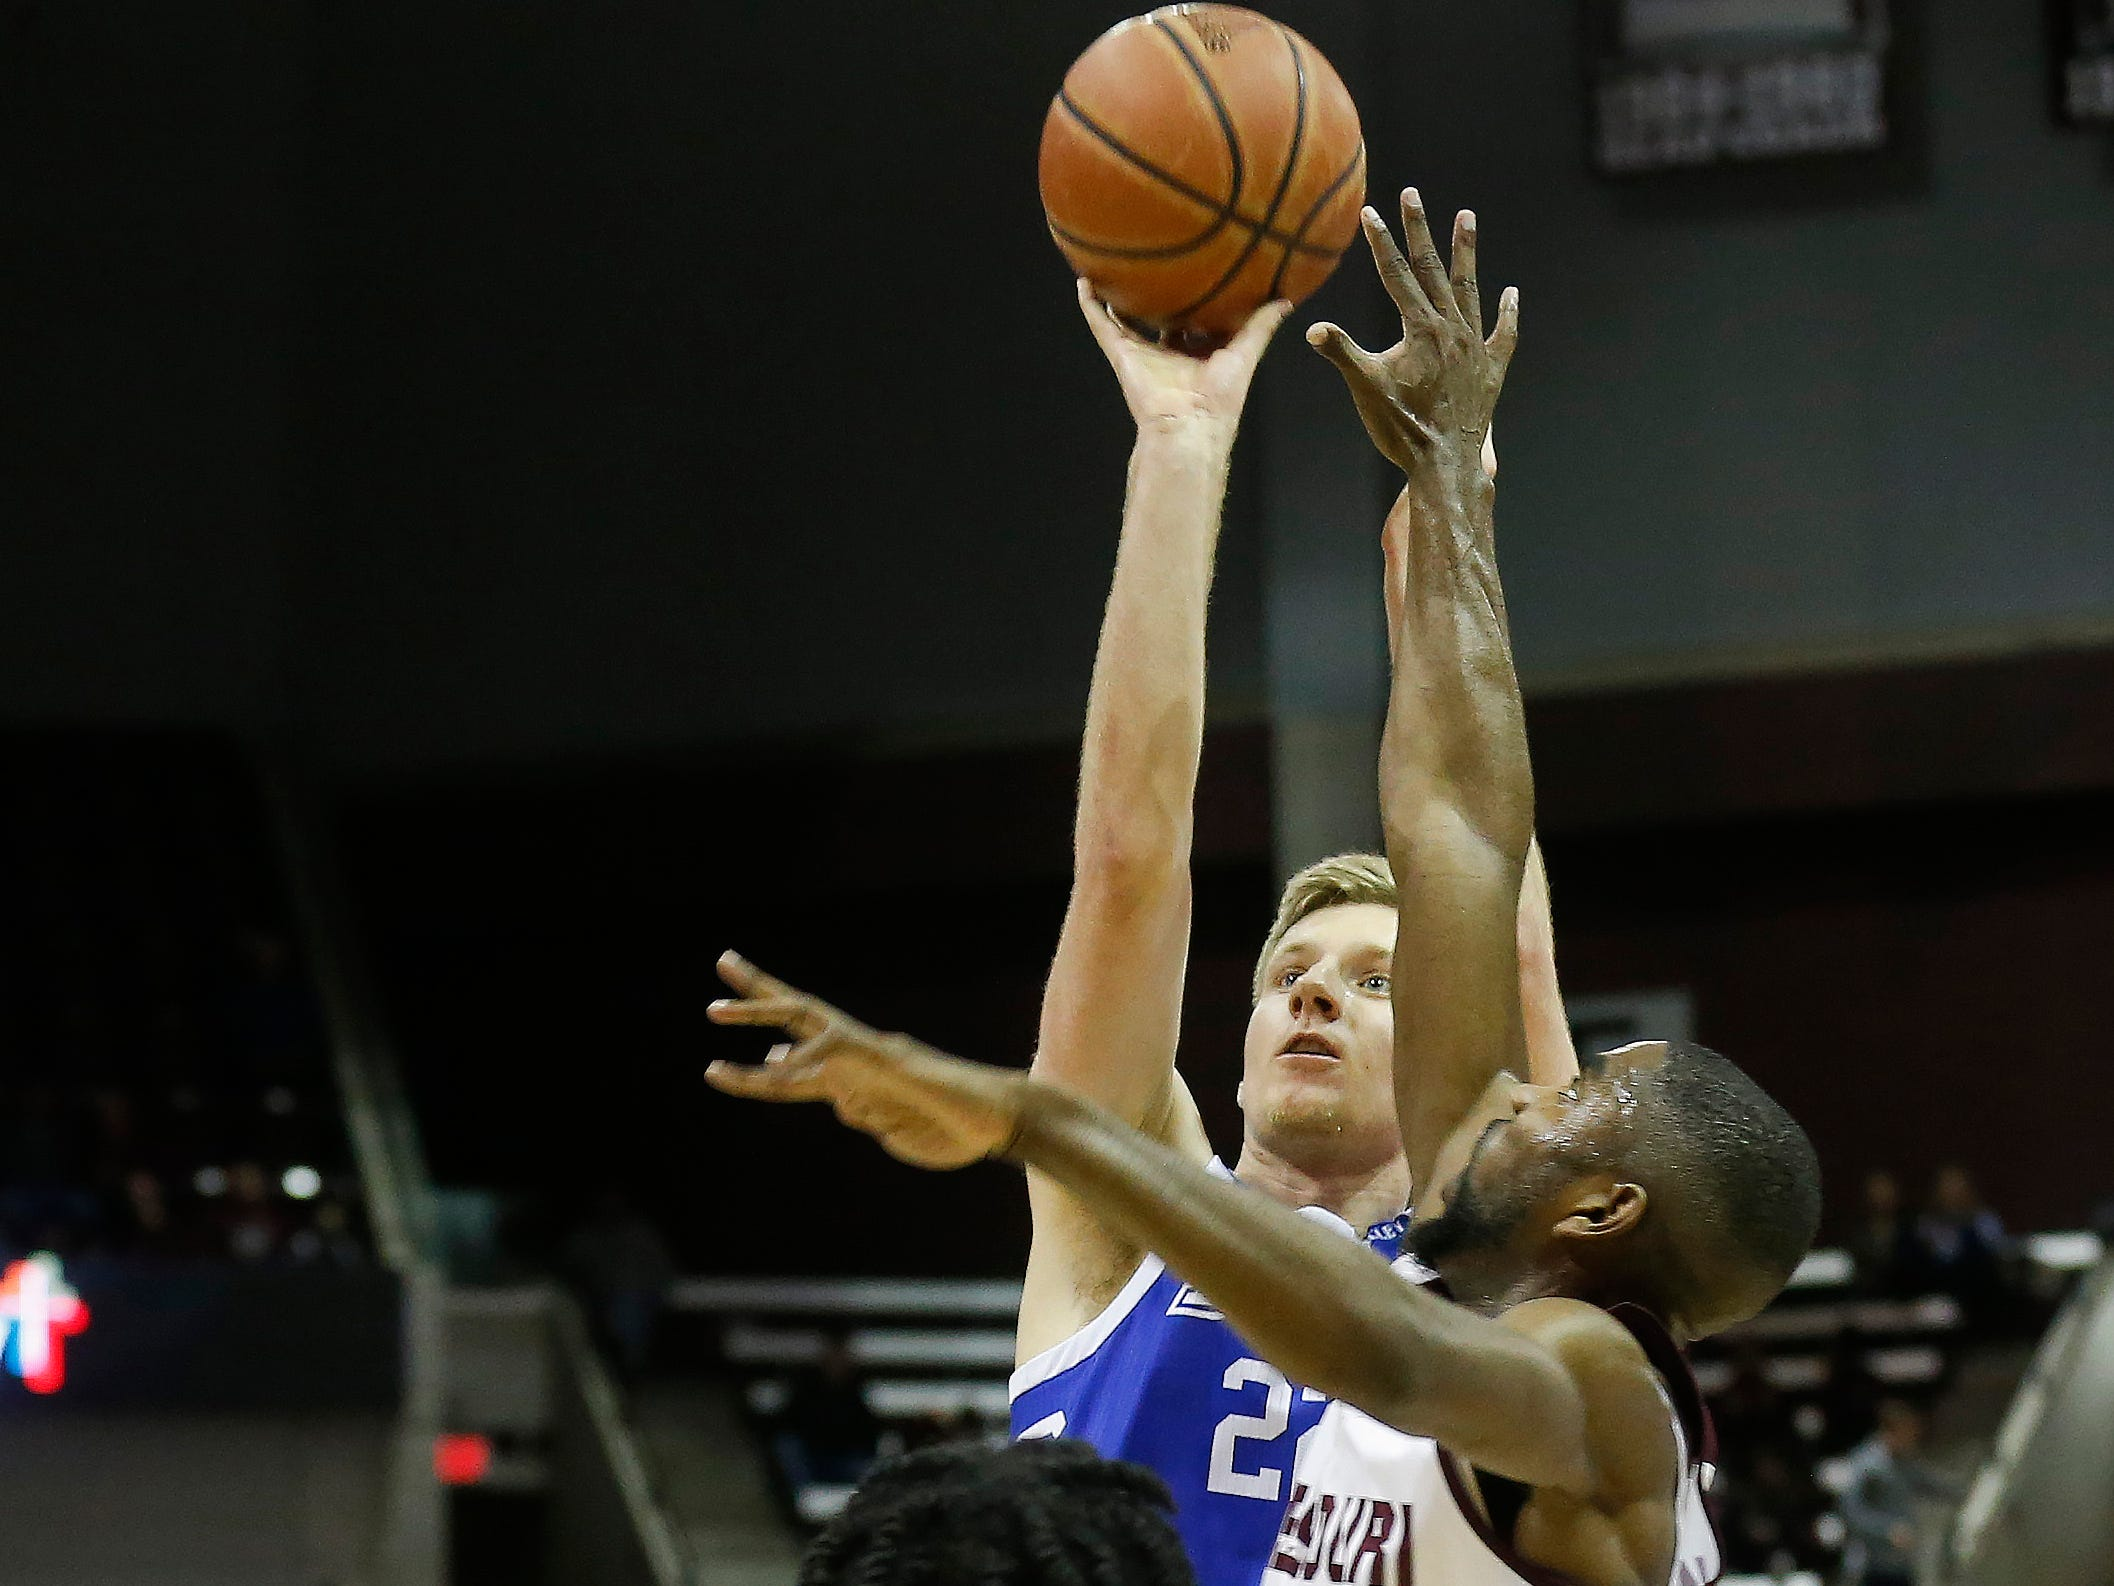 Brady Ellingson, of Drake, puts up a shot during the Bulldogs 73-62 over Missouri State at JQH Arena on Saturday, Mar. 2, 2019.